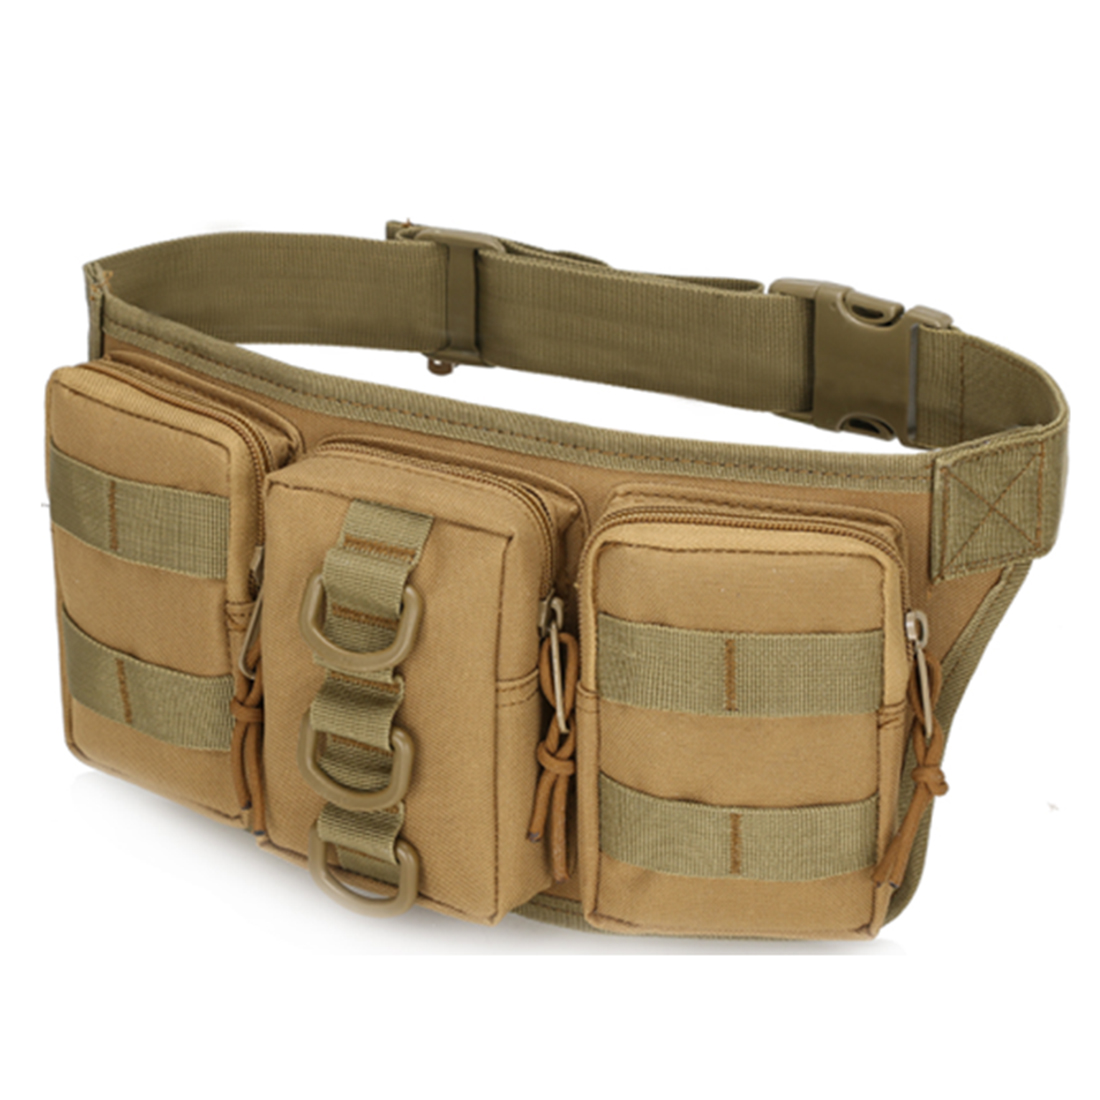 Small-sized Outdoor Waterproof Tactical Three-pouch Waist Bag For Nerf CS Hiking Fishing Sports Hunting Waist Bags Belt free knight 3 5l tactical molle bag waist bag waterproof hiking fishing sports hunting waist bag camping sport bag